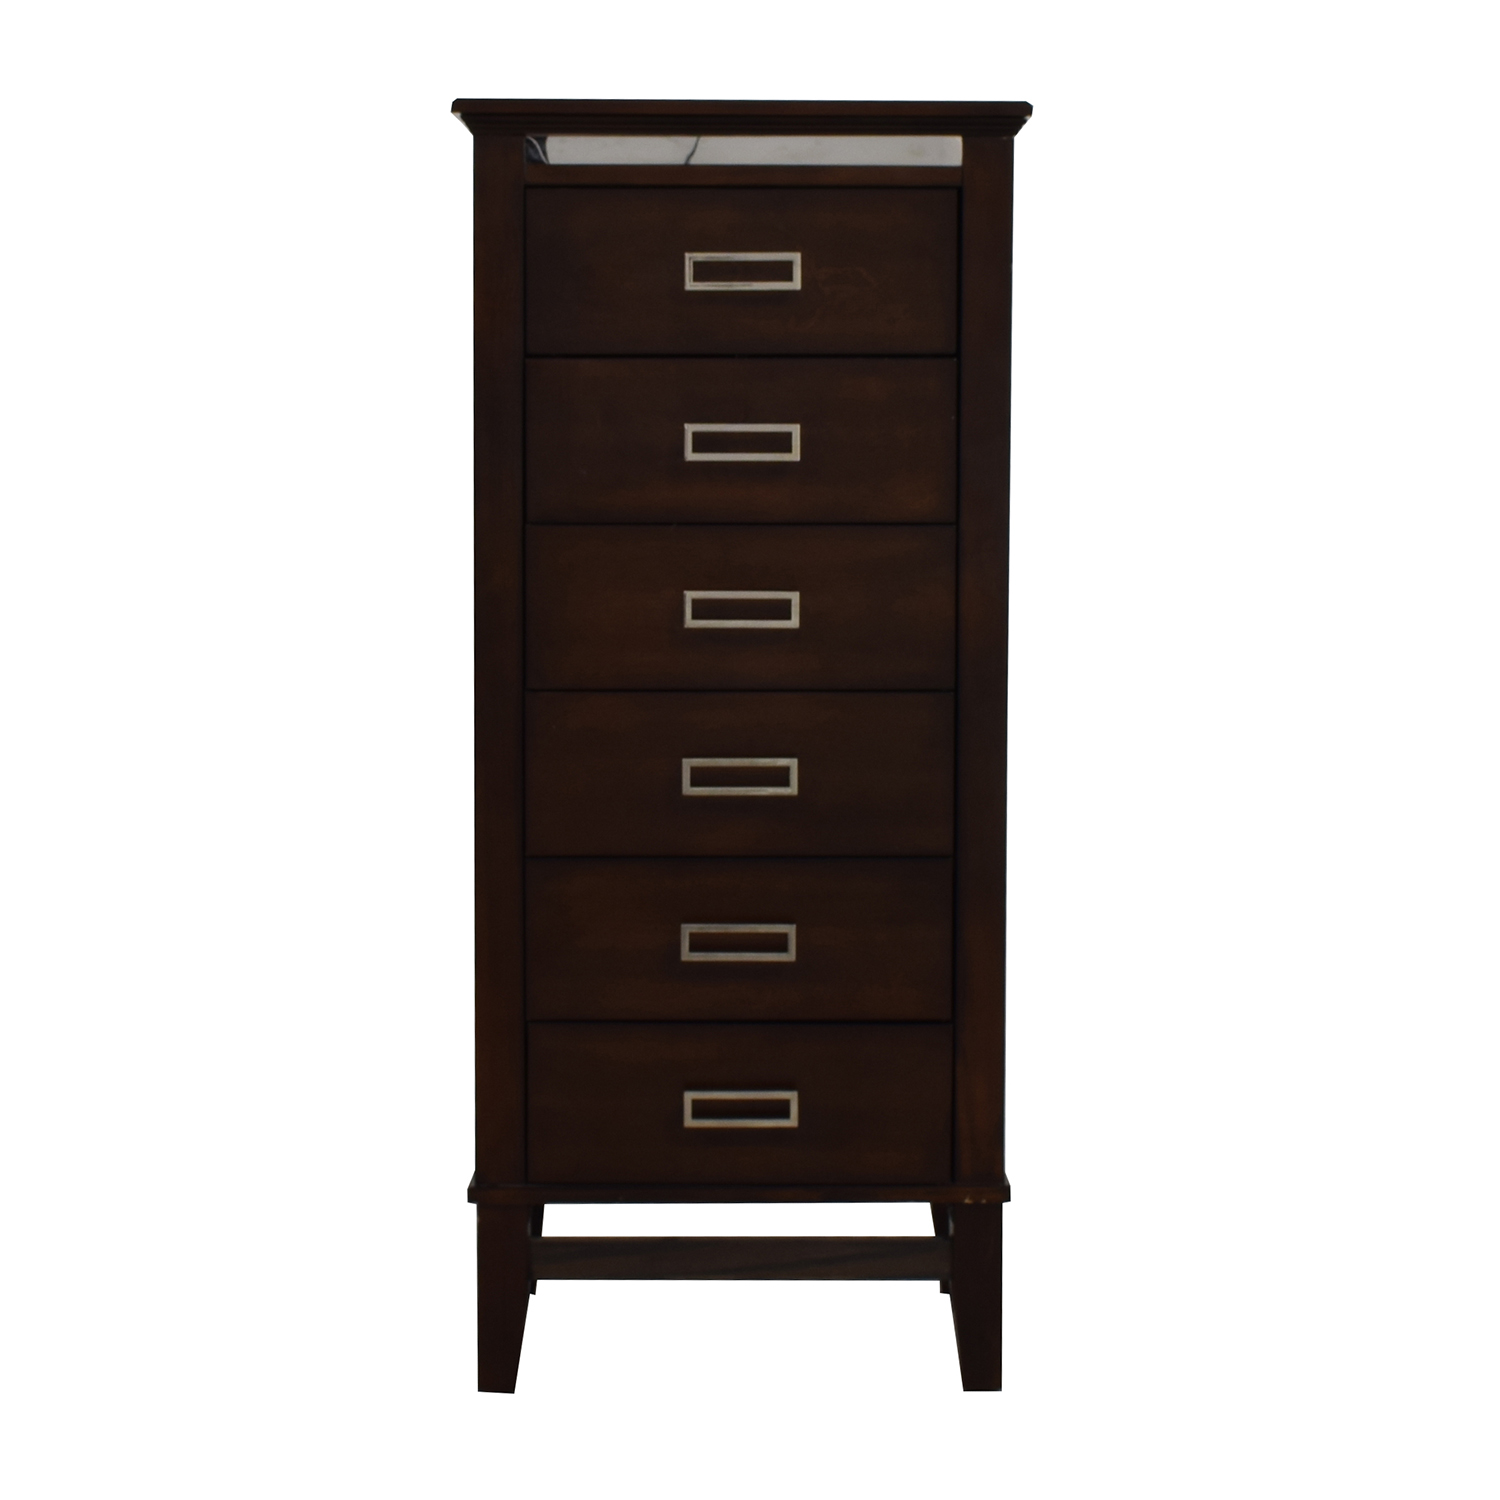 Bobs Furniture Bobs Furniture Wooden Lingerie Chest Dressers